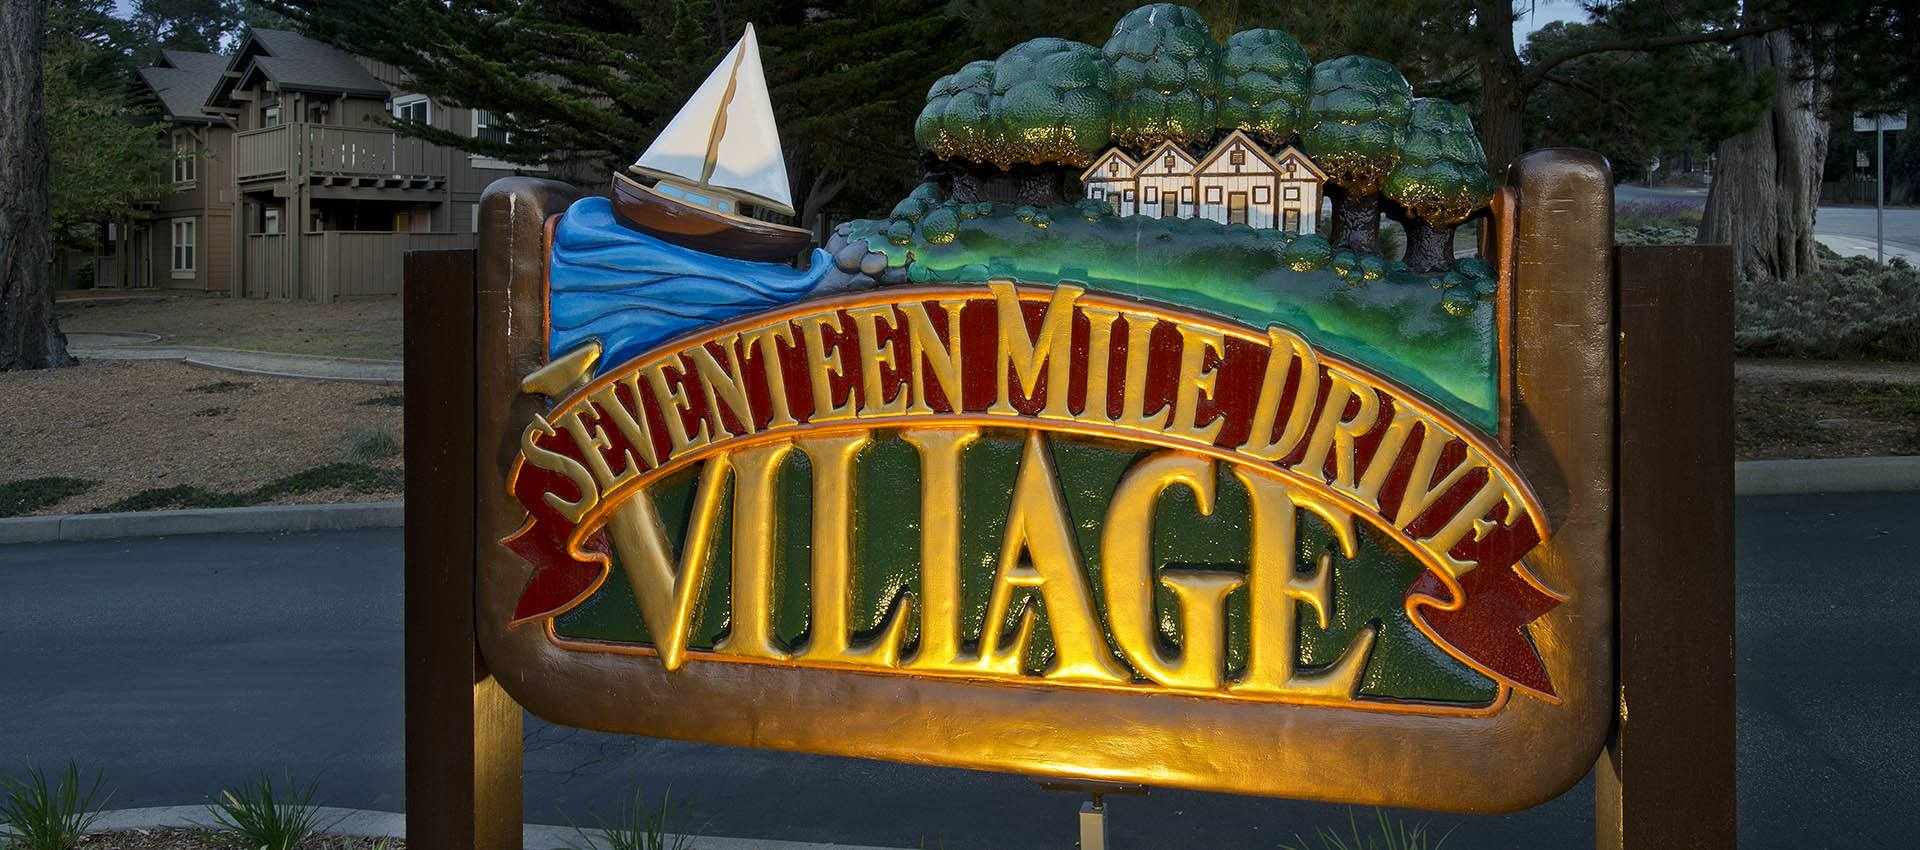 Signage at Seventeen Mile Drive Village Apartment Homes in Pacific Grove